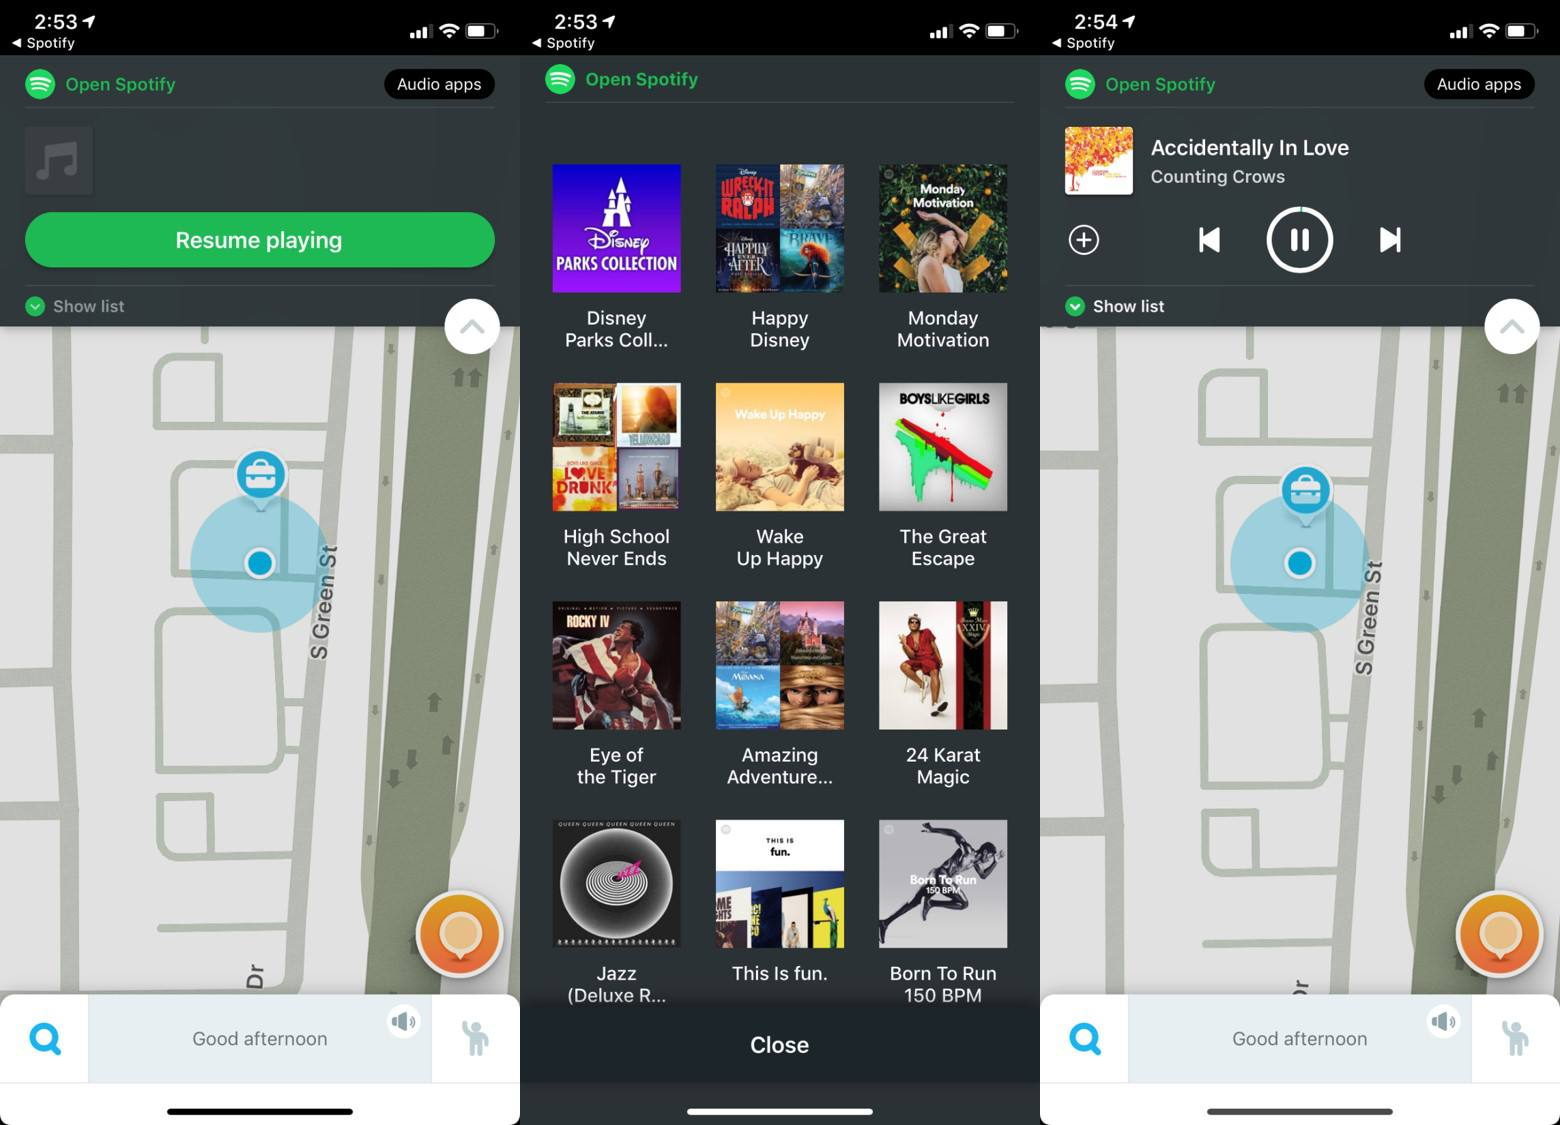 How to Use Waze to Play Spotify